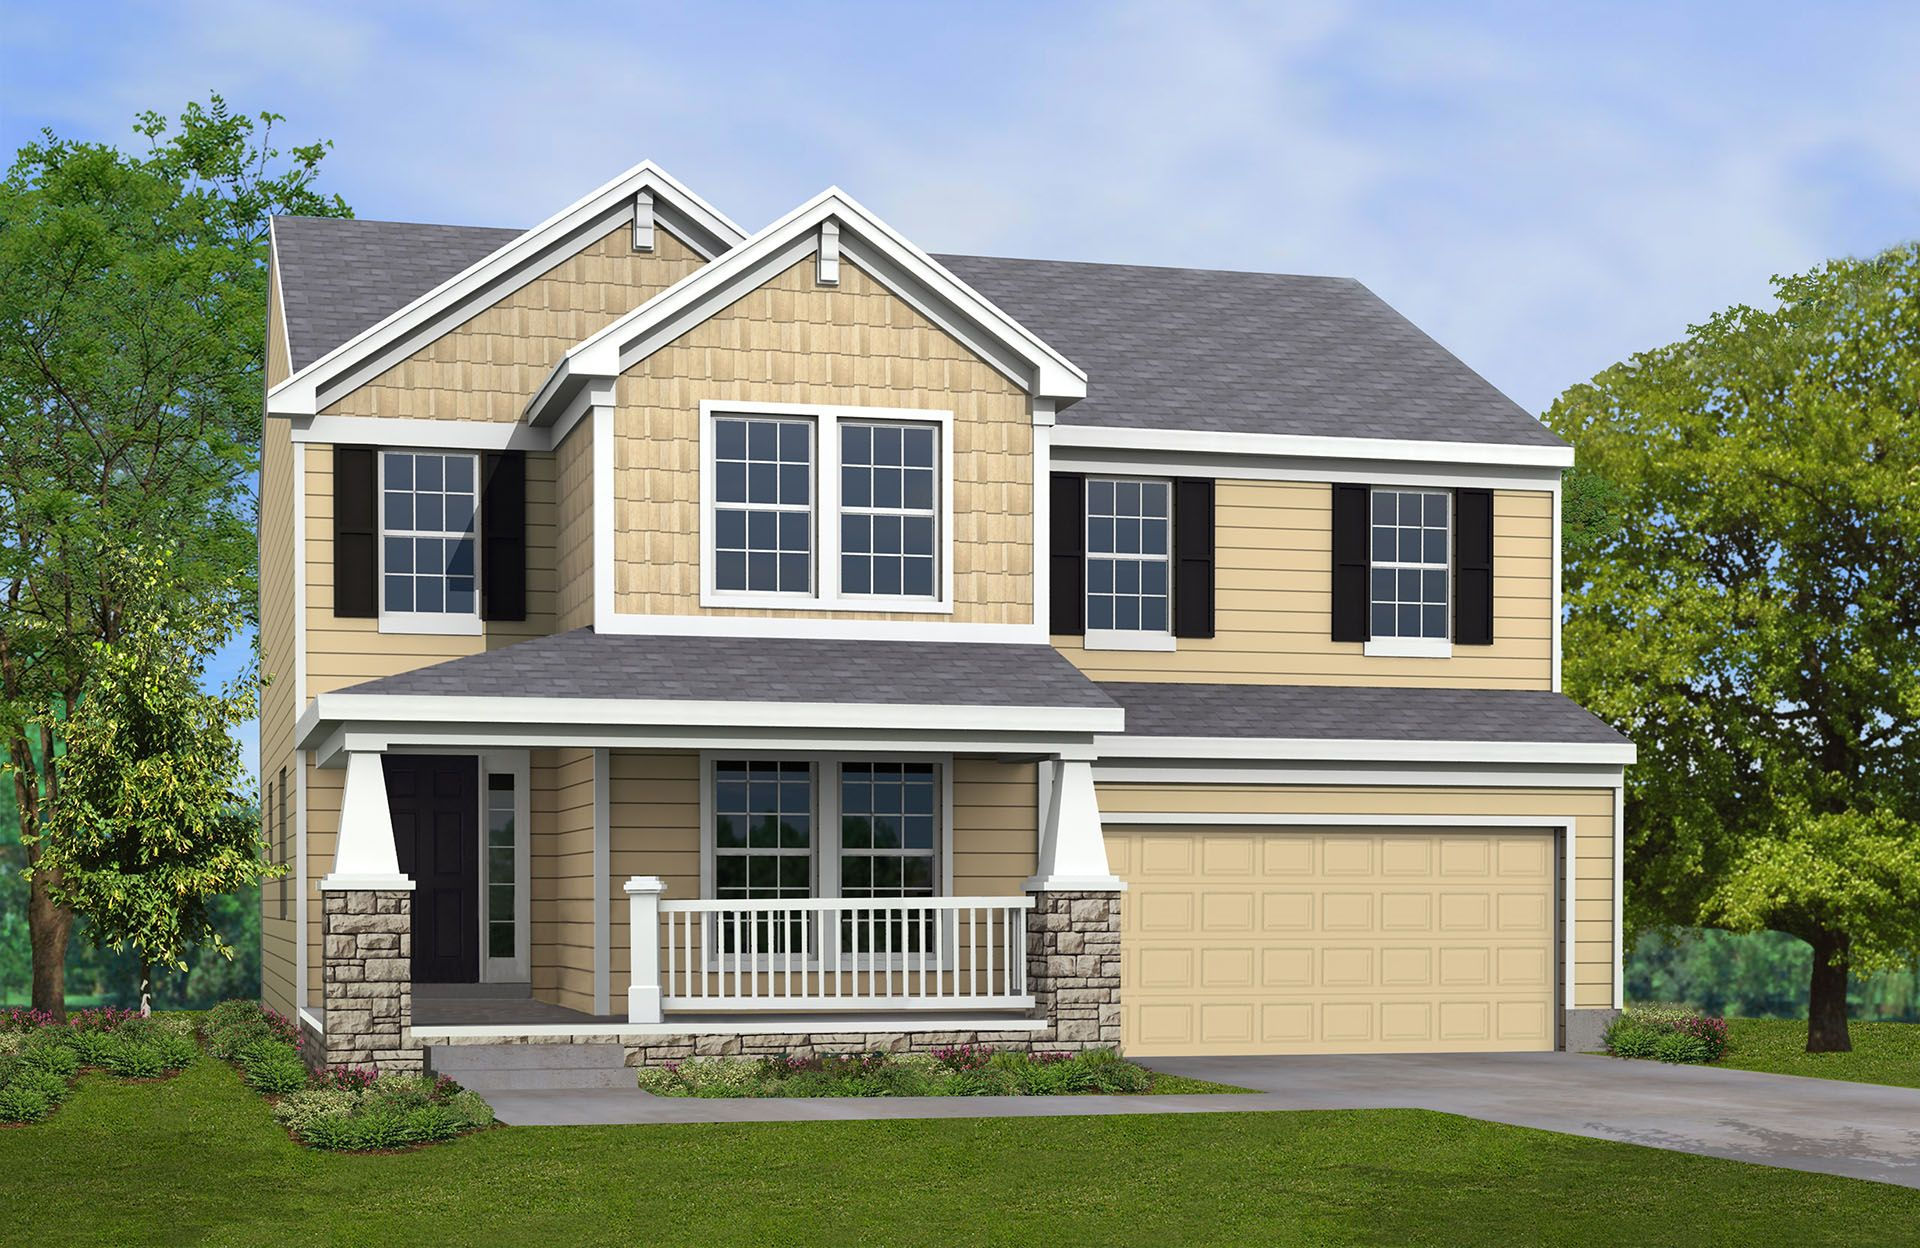 Harmony: Harmony Expressions by Drees Homes